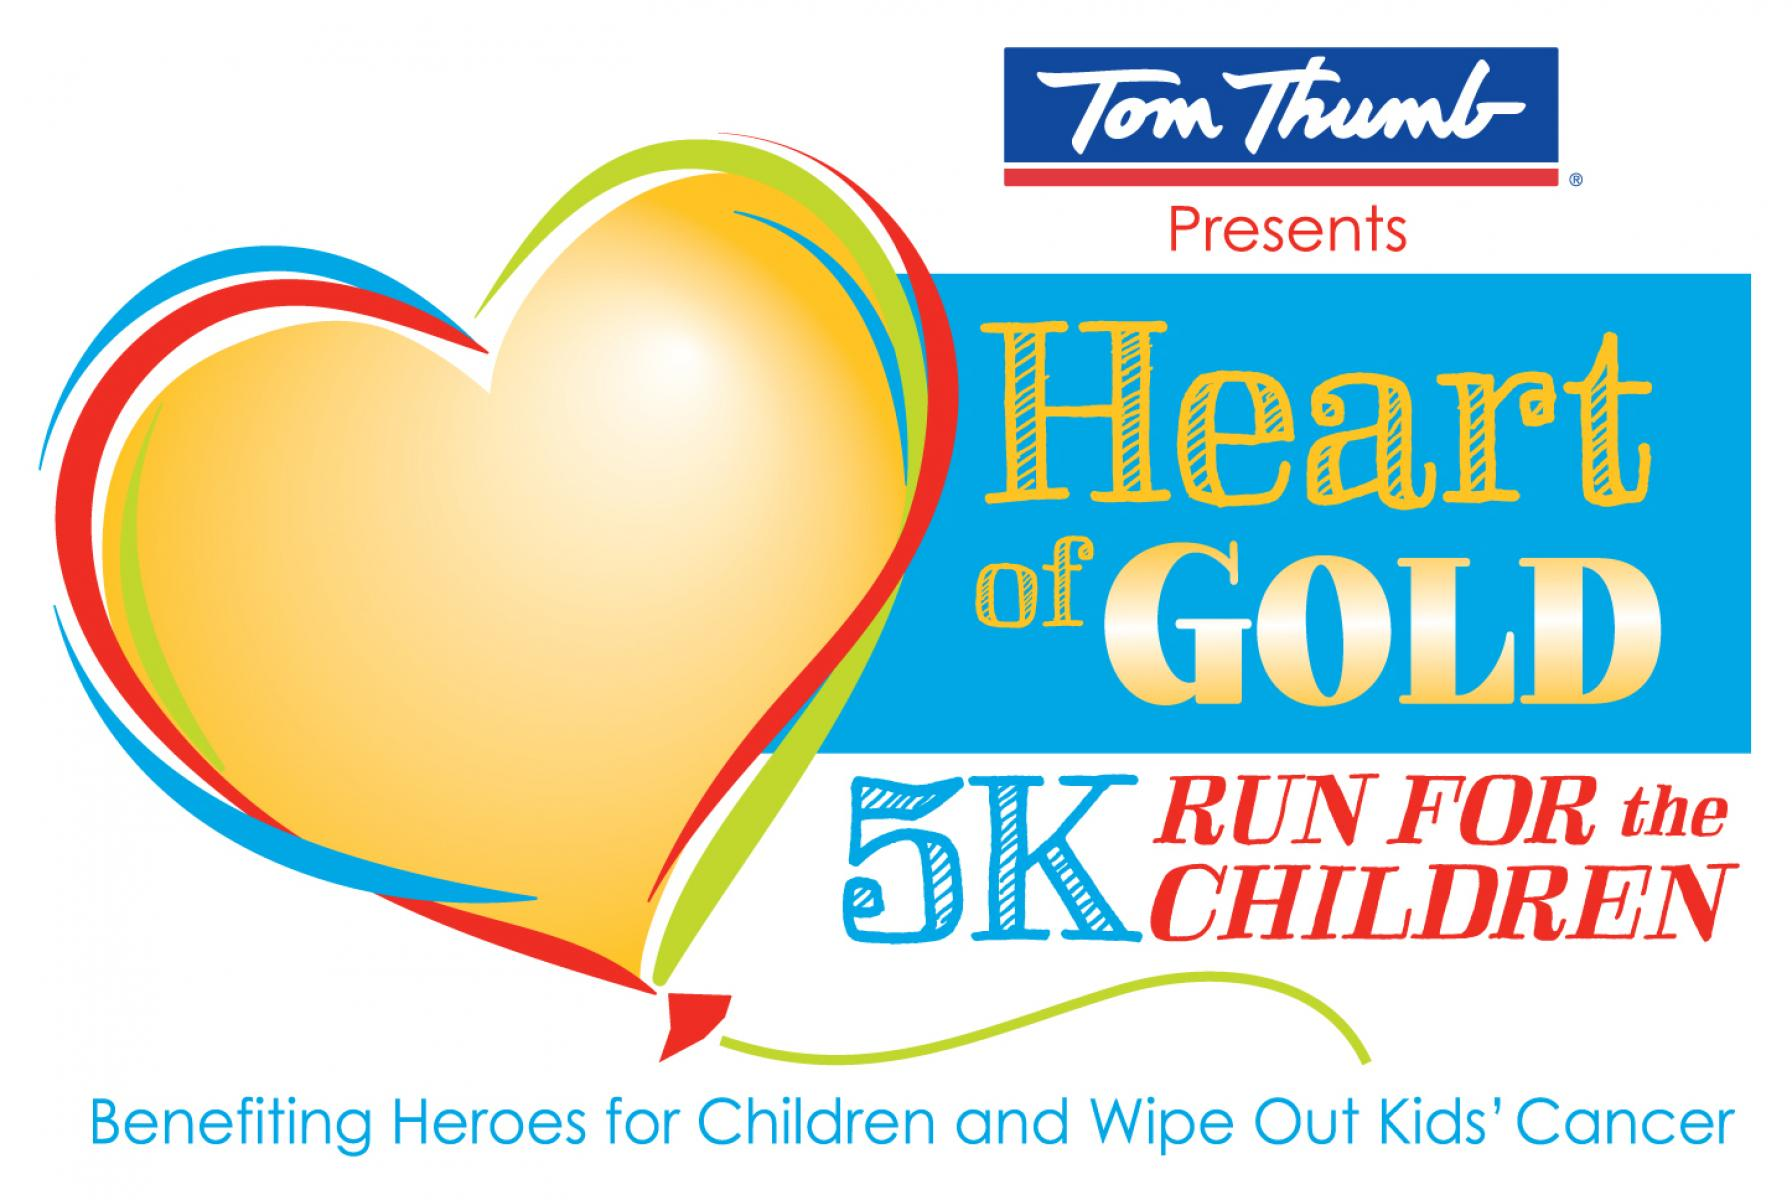 Heart of Gold 5K: Run for the Children